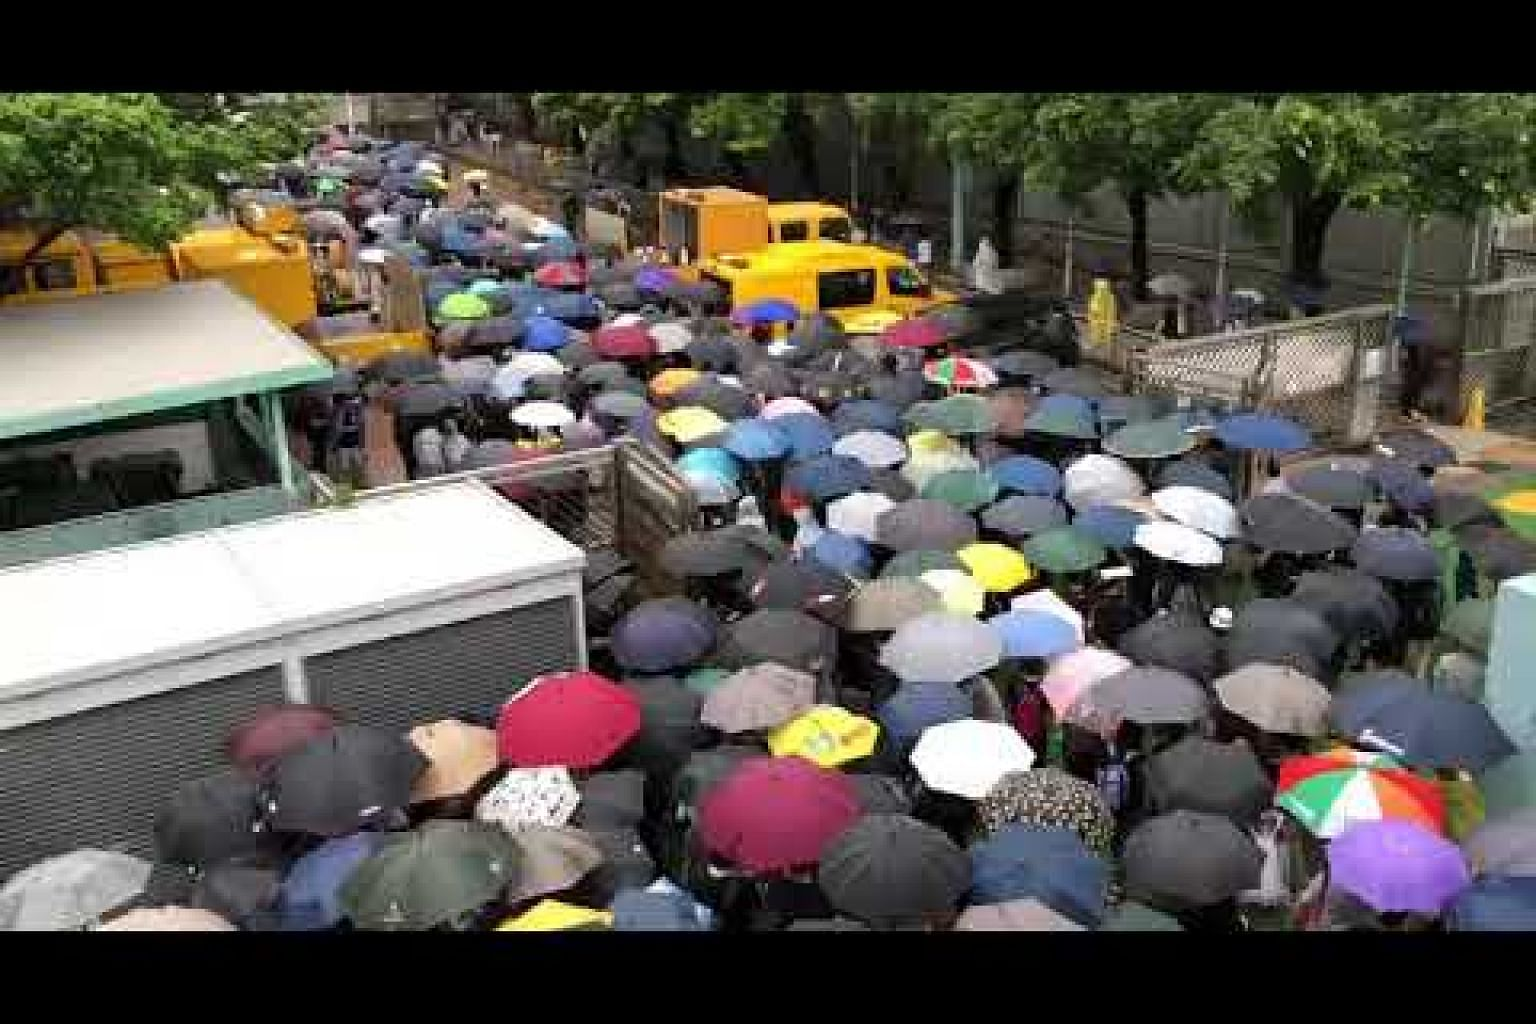 Protesters marching in the rain on Aug 25